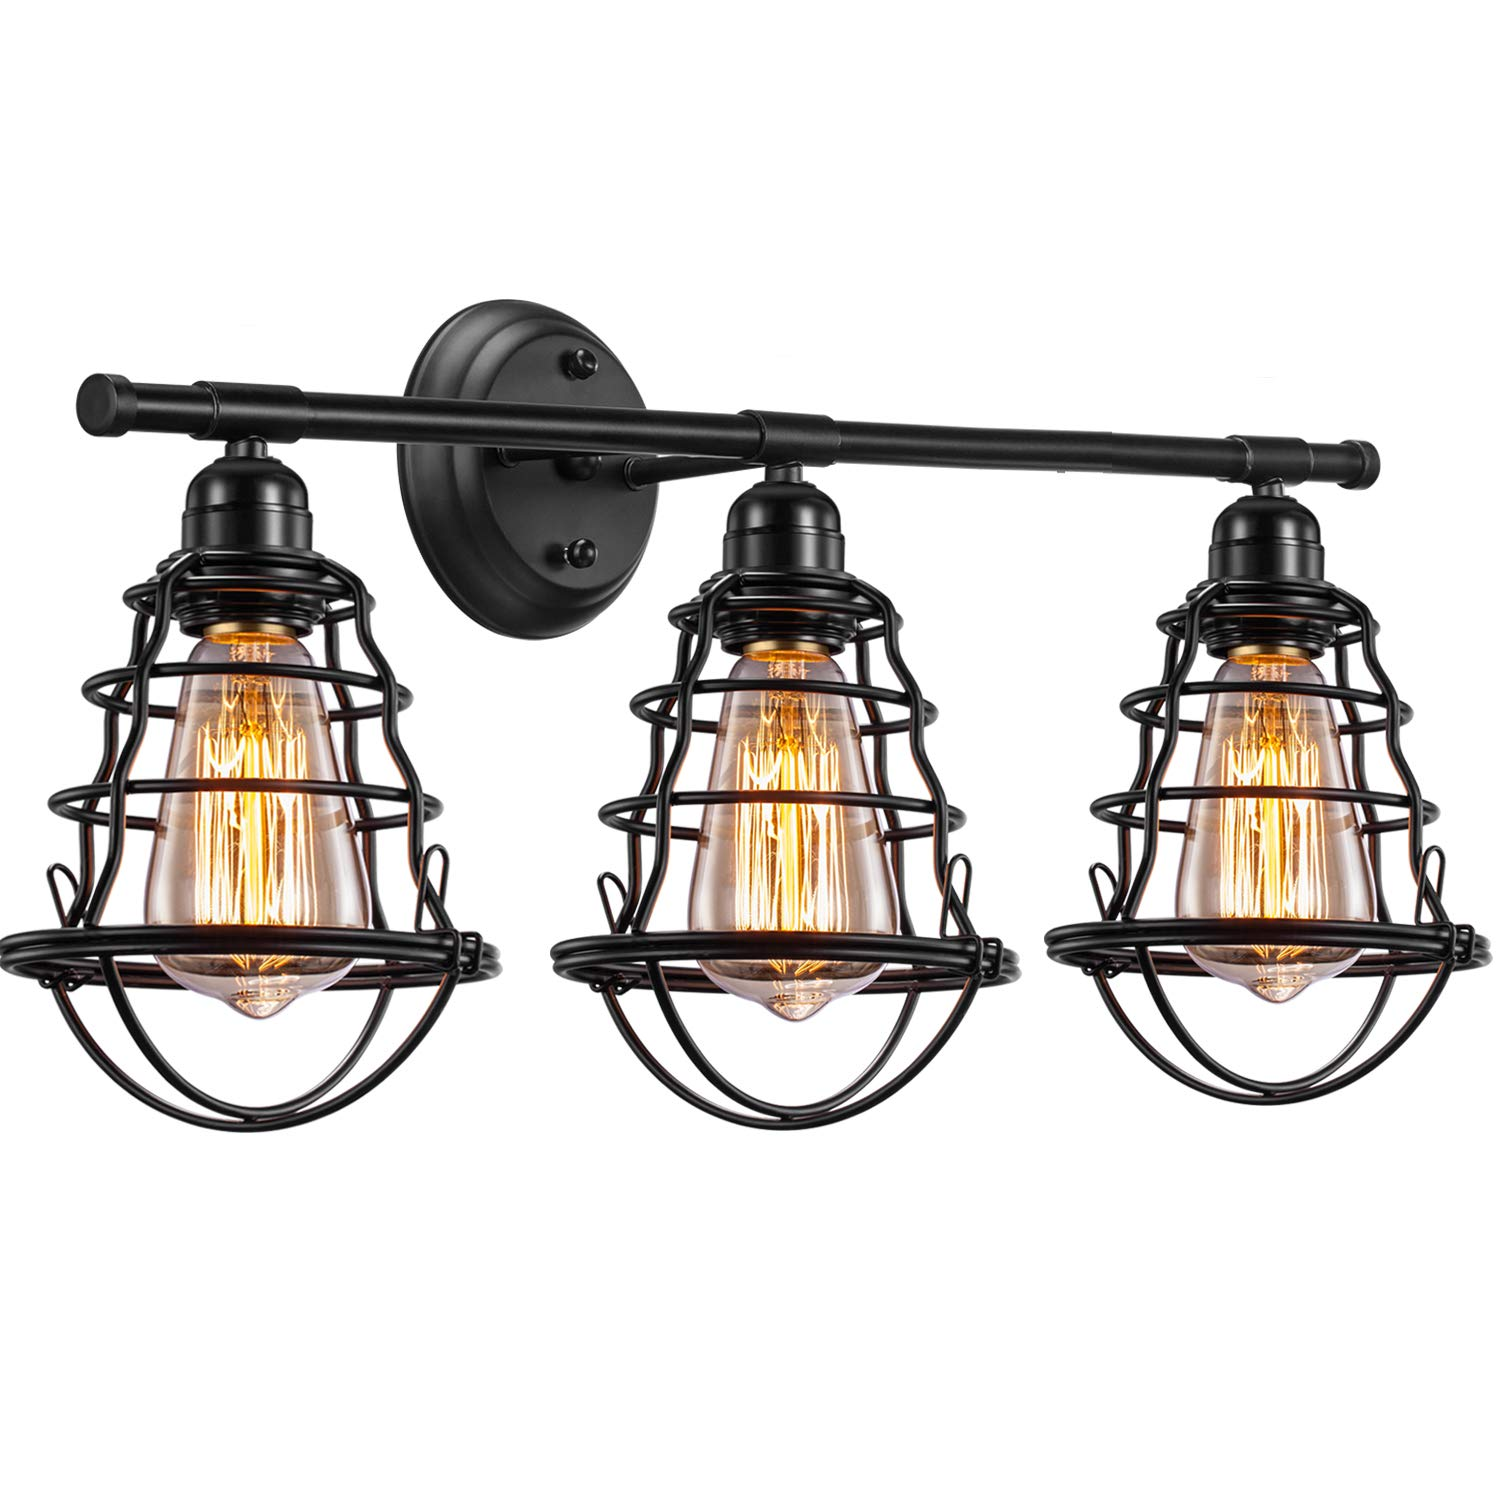 Asnxcju Edison 3-Light Bathroom Vintage Vanity Wall Sconce Lighting, Industrial Metal Wire Cage Wall Light, Rustic Farmhouse Style Wall Lamp Fixtures for Bathroom Living Room Kitchen